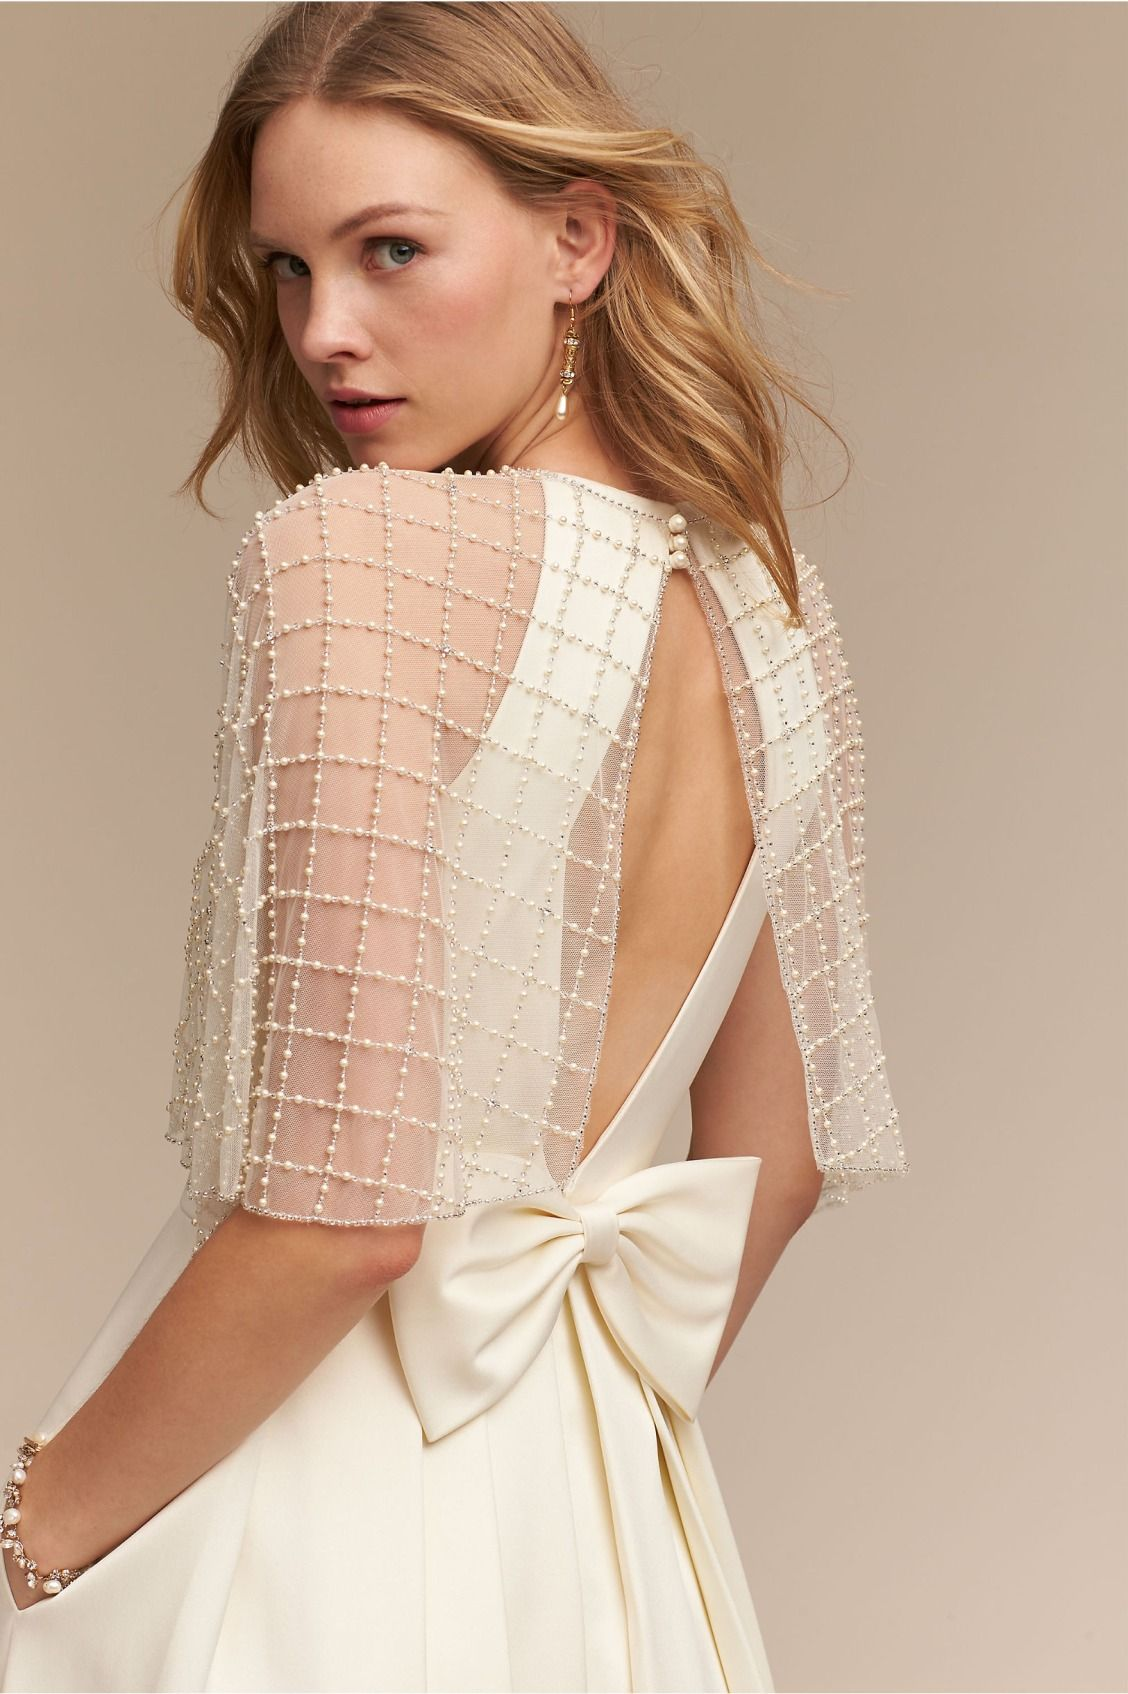 Latticed crystals and pearls astair capelet from bhldn design your own wedding dress online with bhldns build your own look feature mix and match bridal separates to create your perfect wedding gown look ombrellifo Gallery